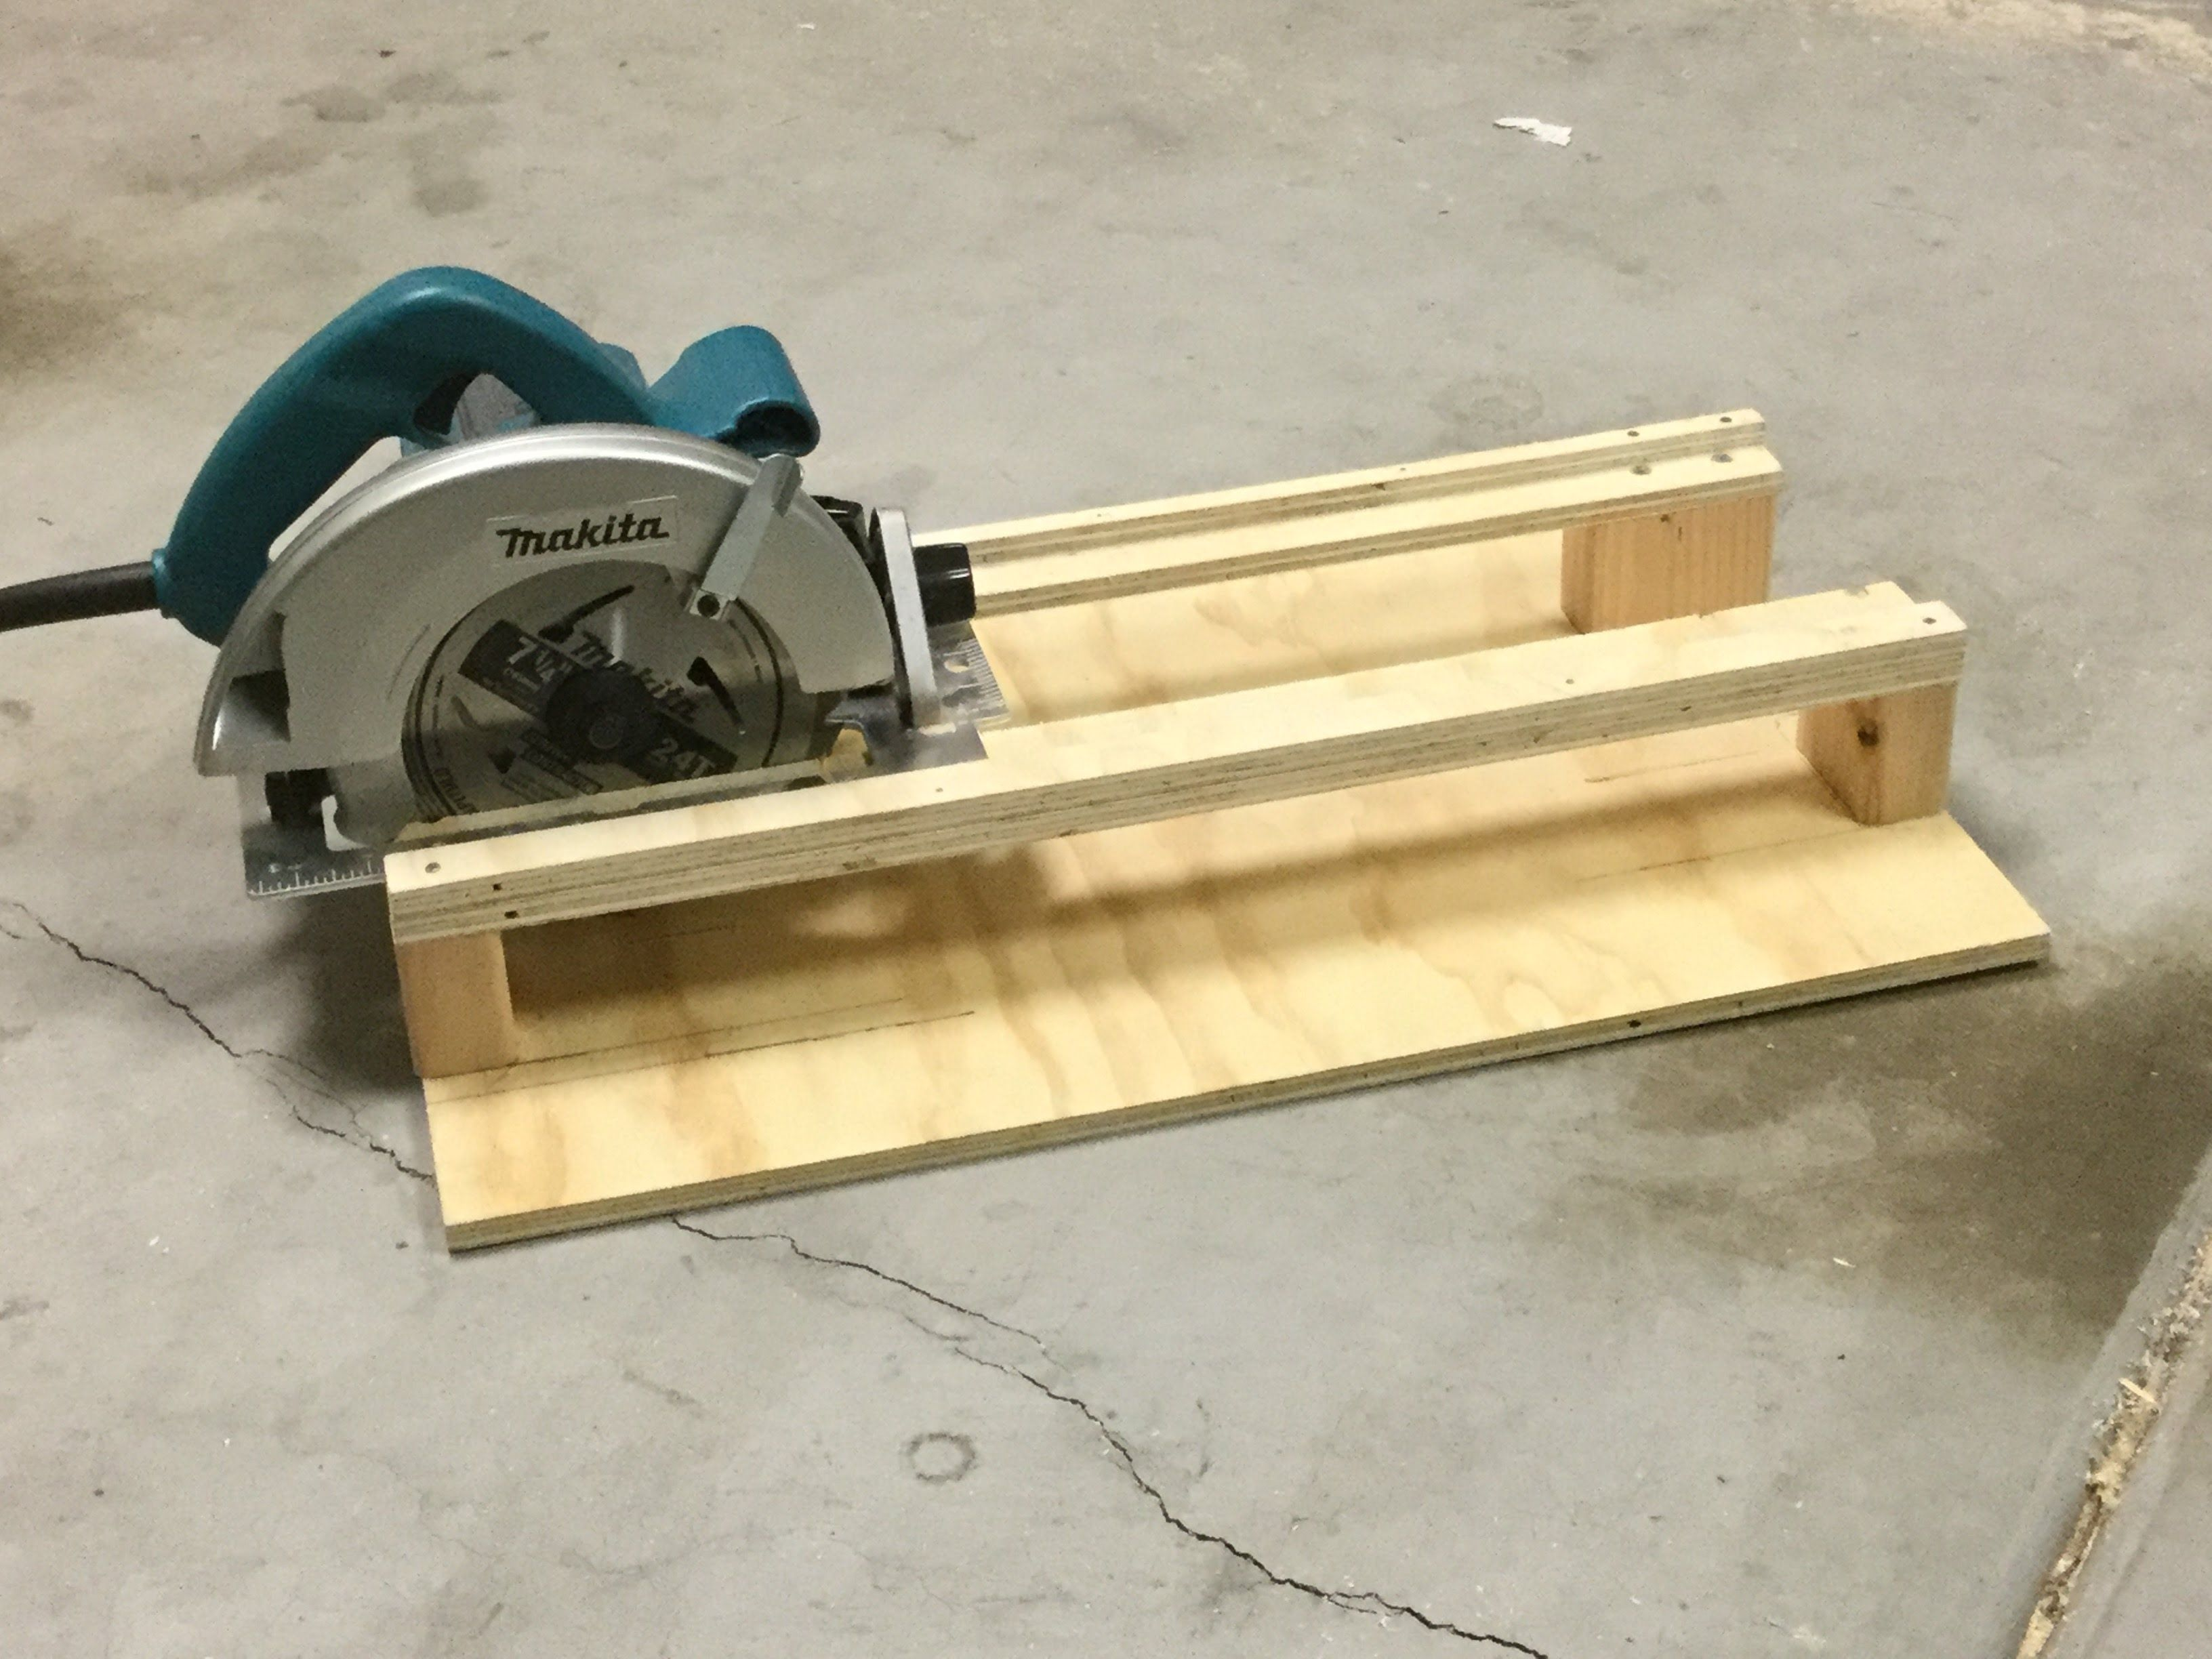 I Built A Simple Crosscutting Jig For Use With A Circular Saw It S Easy To Build And Consists Of Just One Woodworking Techniques Woodworking Jigs Woodworking